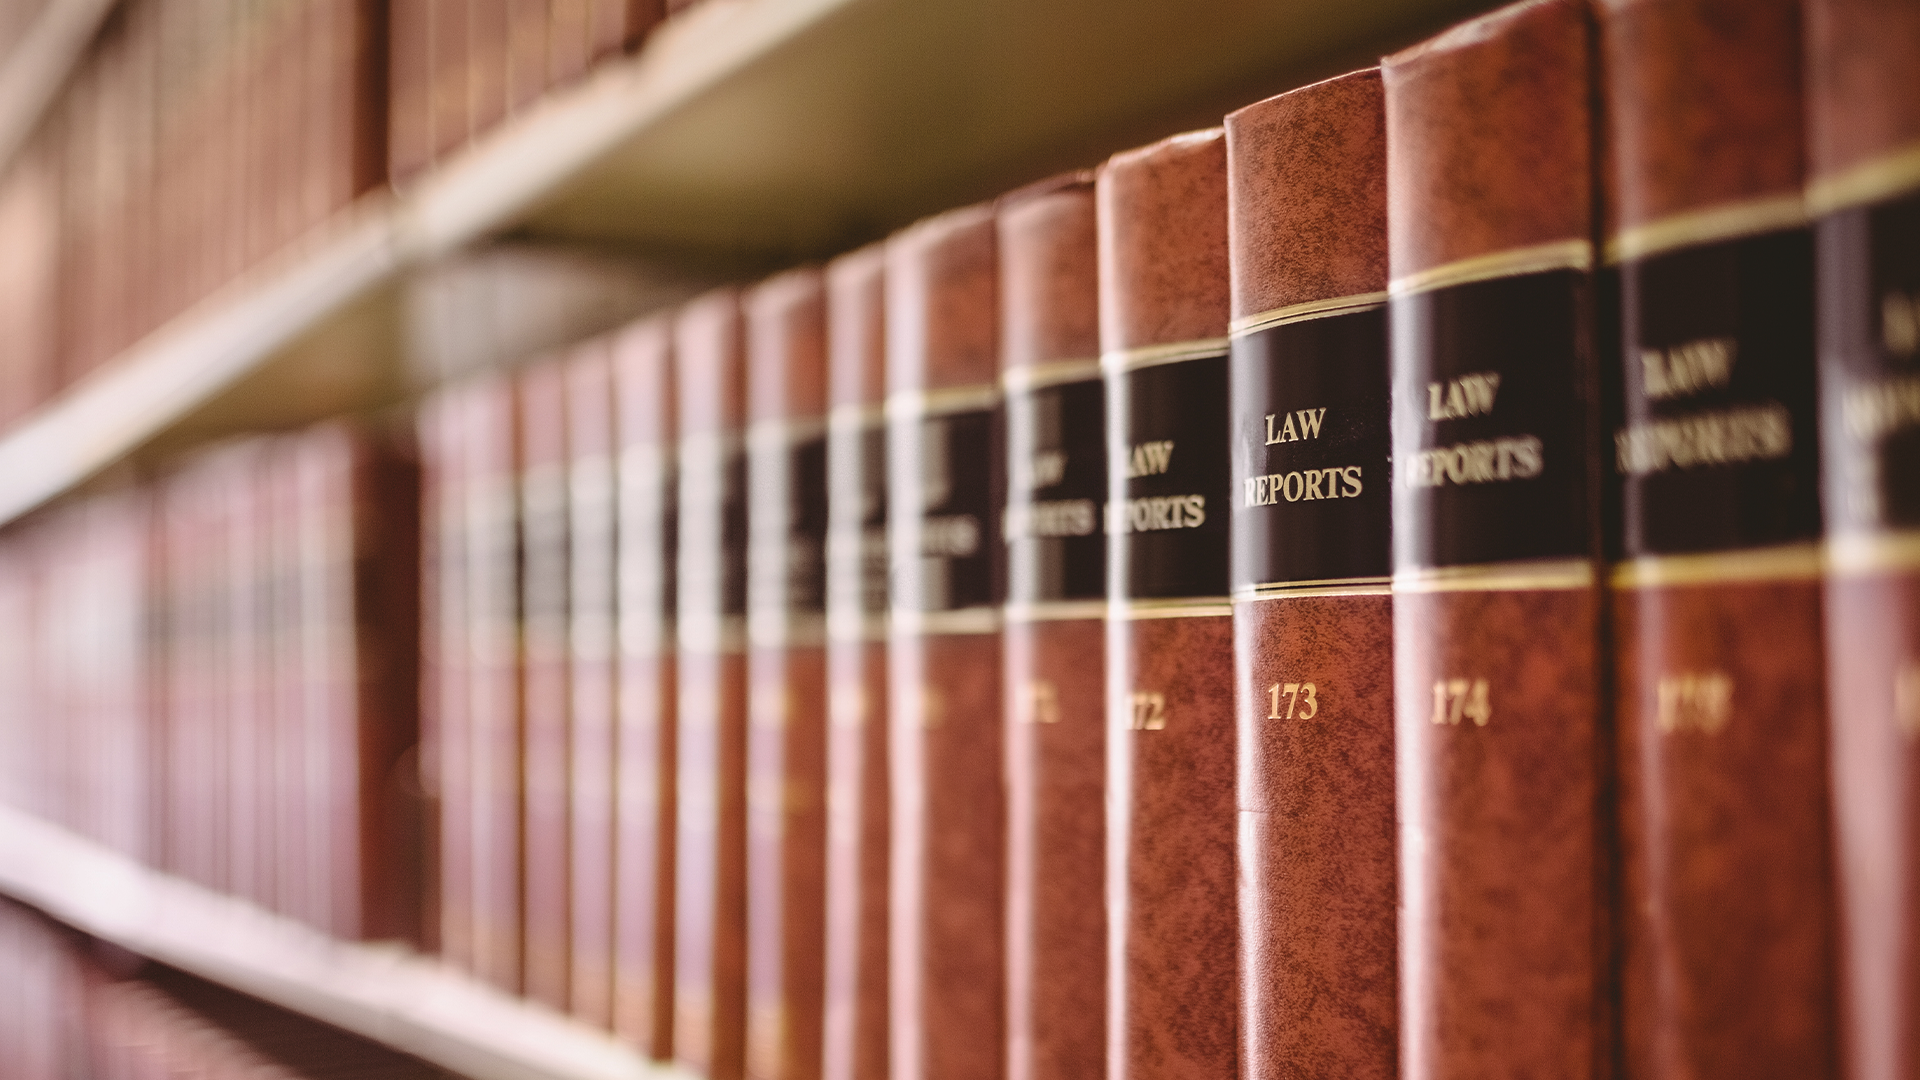 Books-Litigation-Negligence-Case-study-library